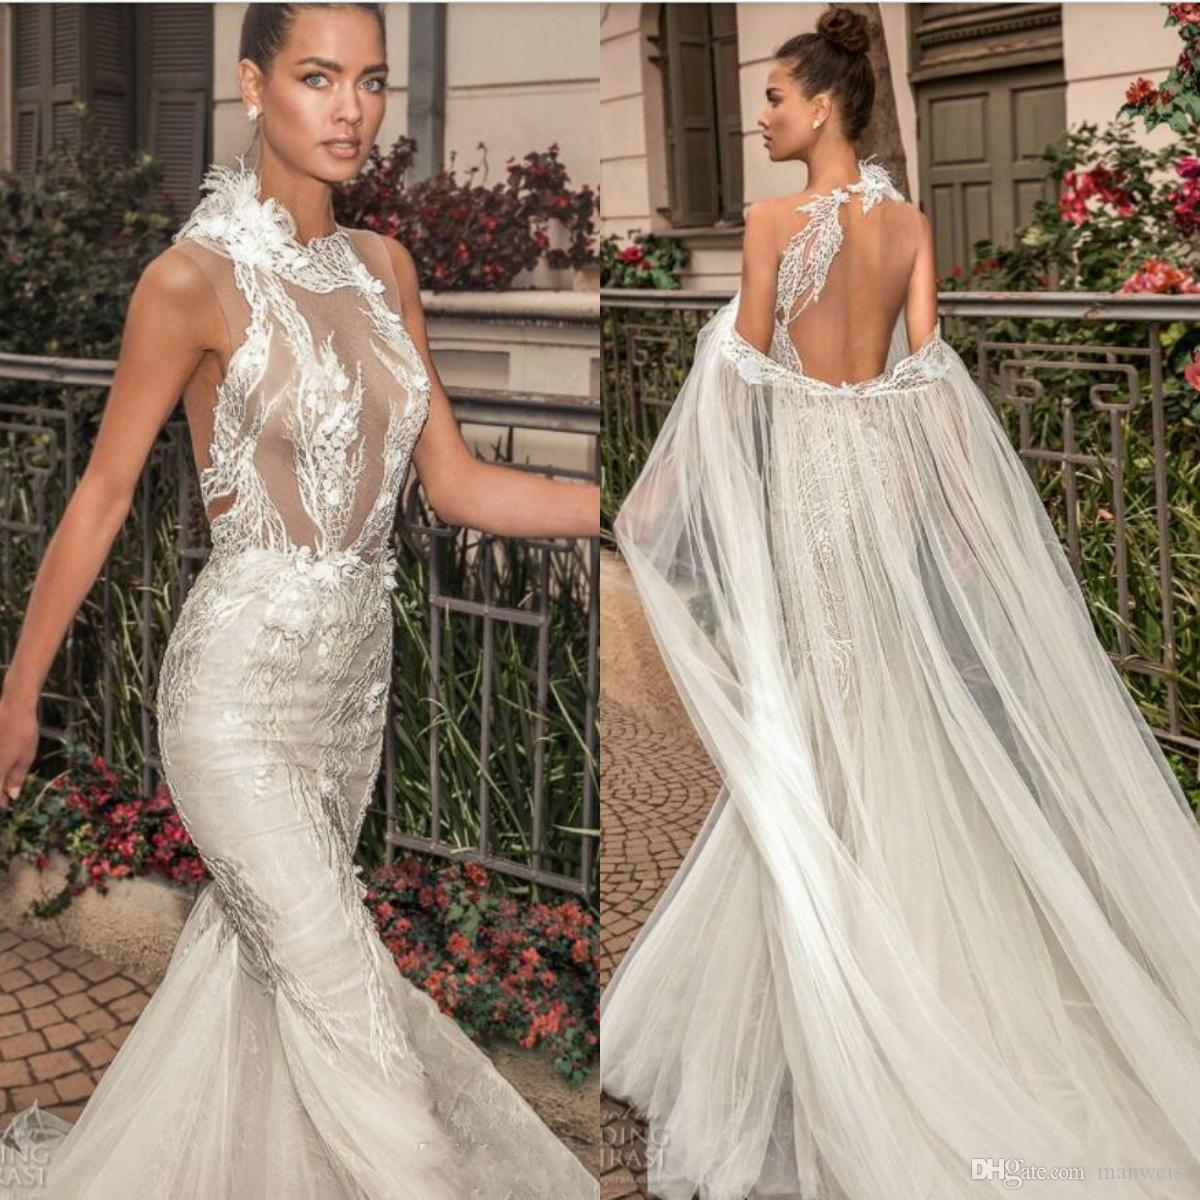 Elihav Sasson 2019 Mermaid Wedding Dresses With Cape Lace Appliques Illusion Backless Beach Bridal Gowns Plus Size Wedding Dress